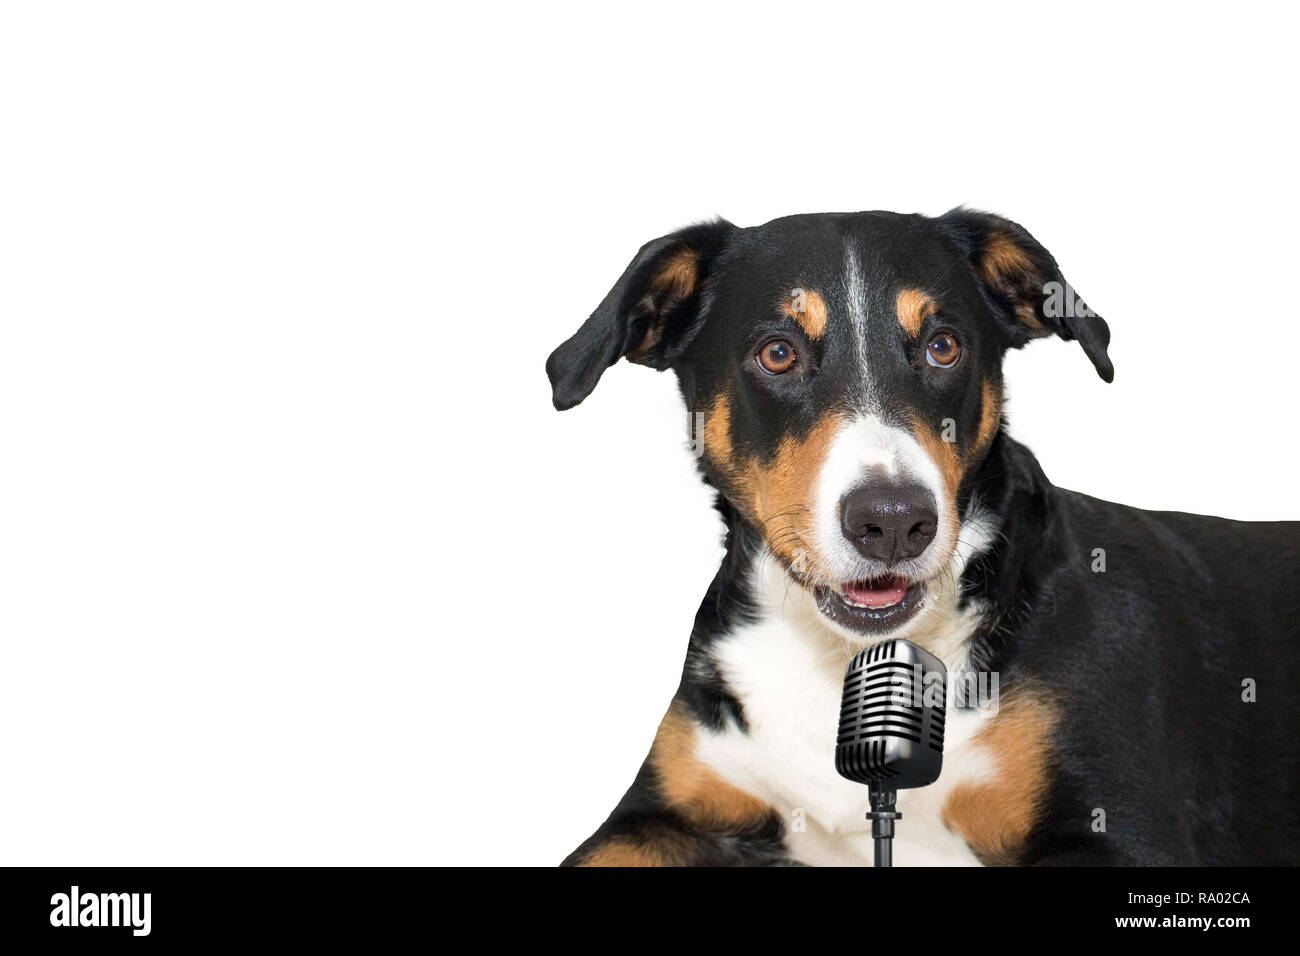 Appenzeller mountain dog isolated on white background singing with microphone - Stock Image